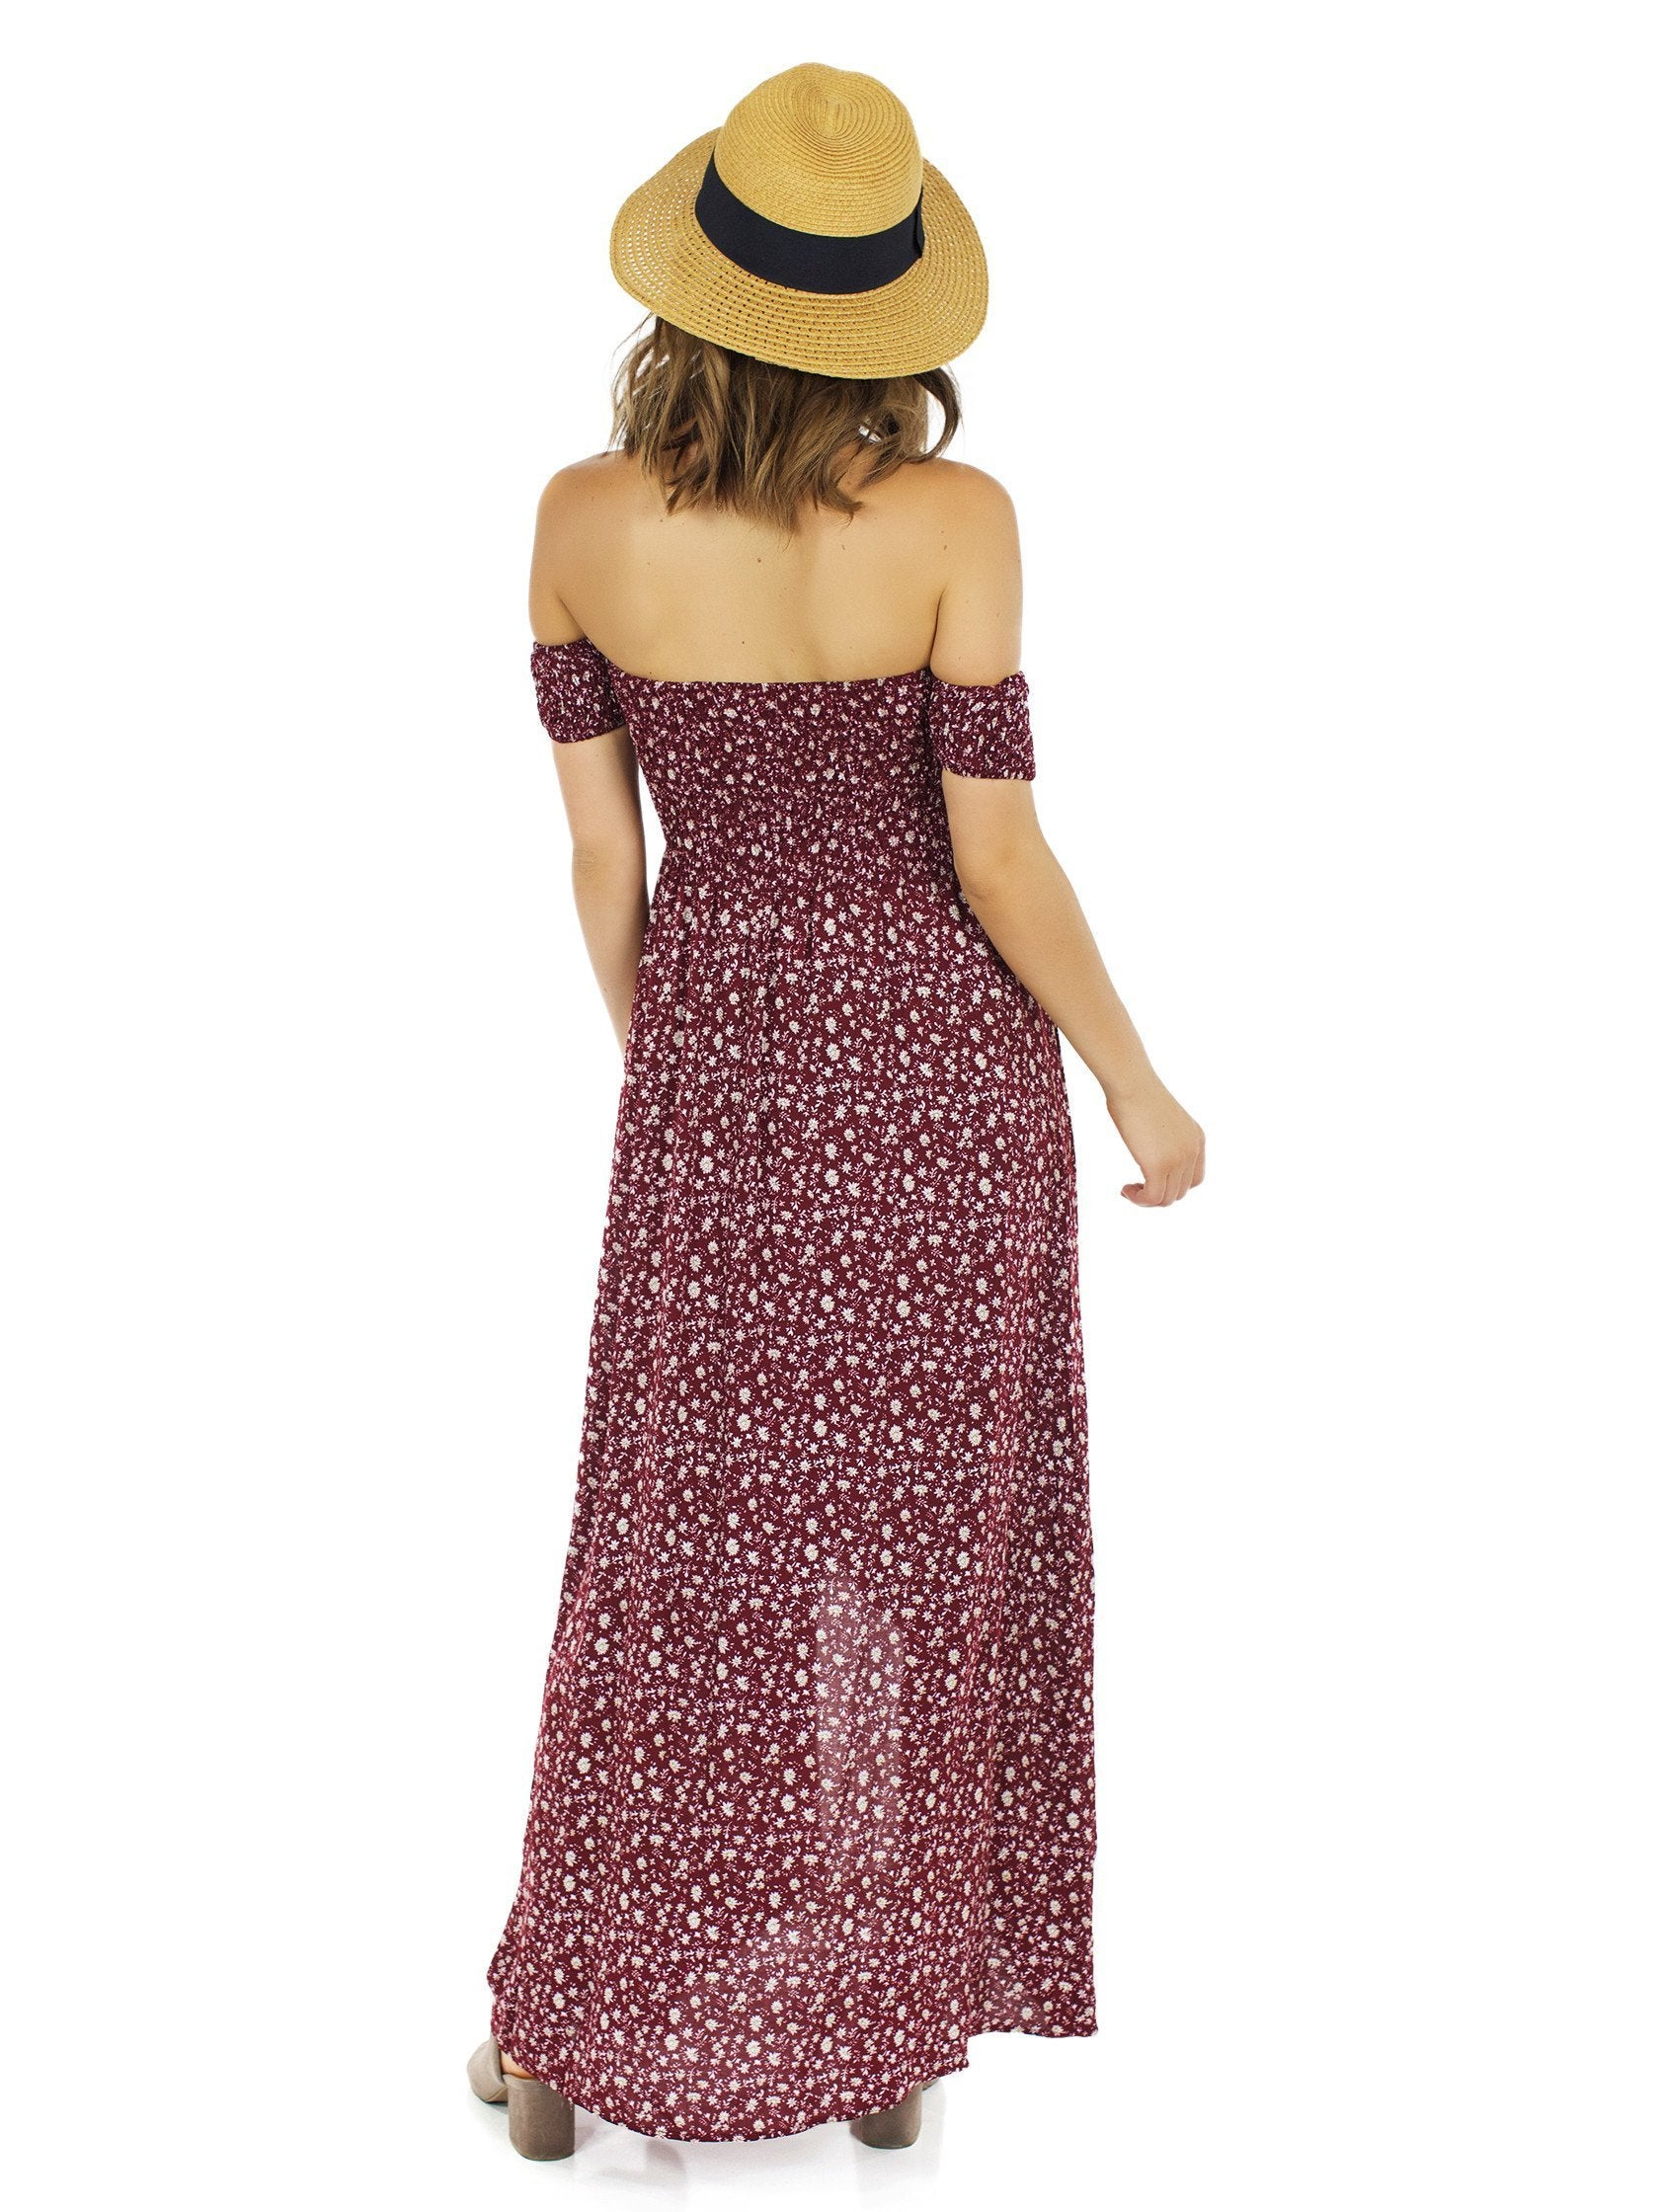 Women wearing a dress rental from Reverse called Allegra Faux Wrap Maxi Dress